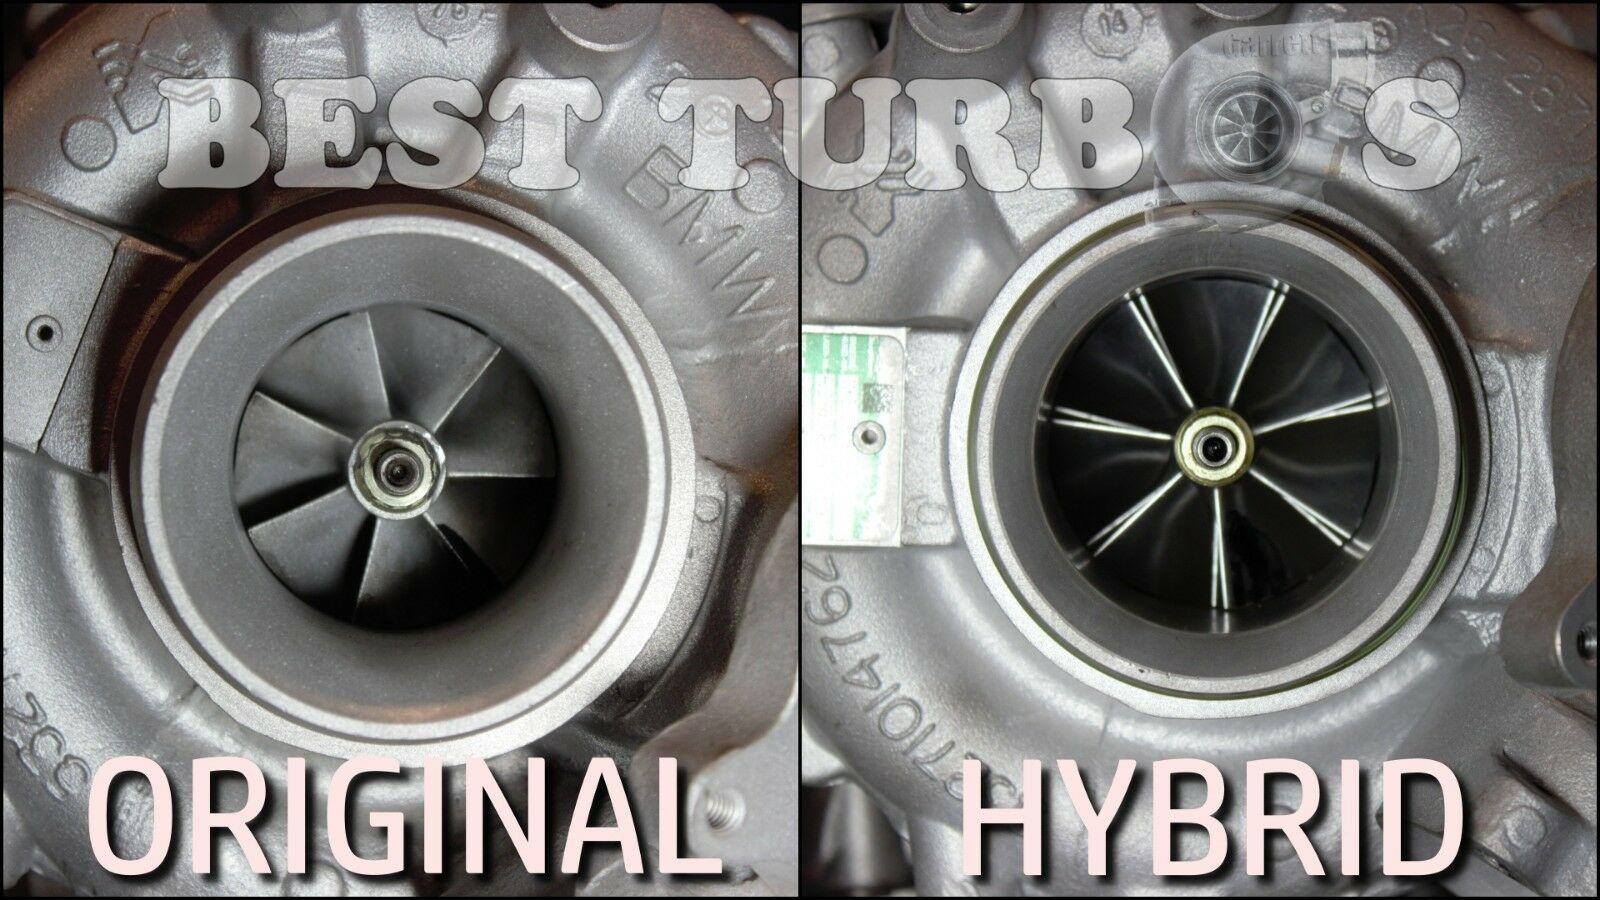 HYBRID Turbocharger for BMW 535d, 740d, xd, GT, X5, X6 - 3 0  53269700005